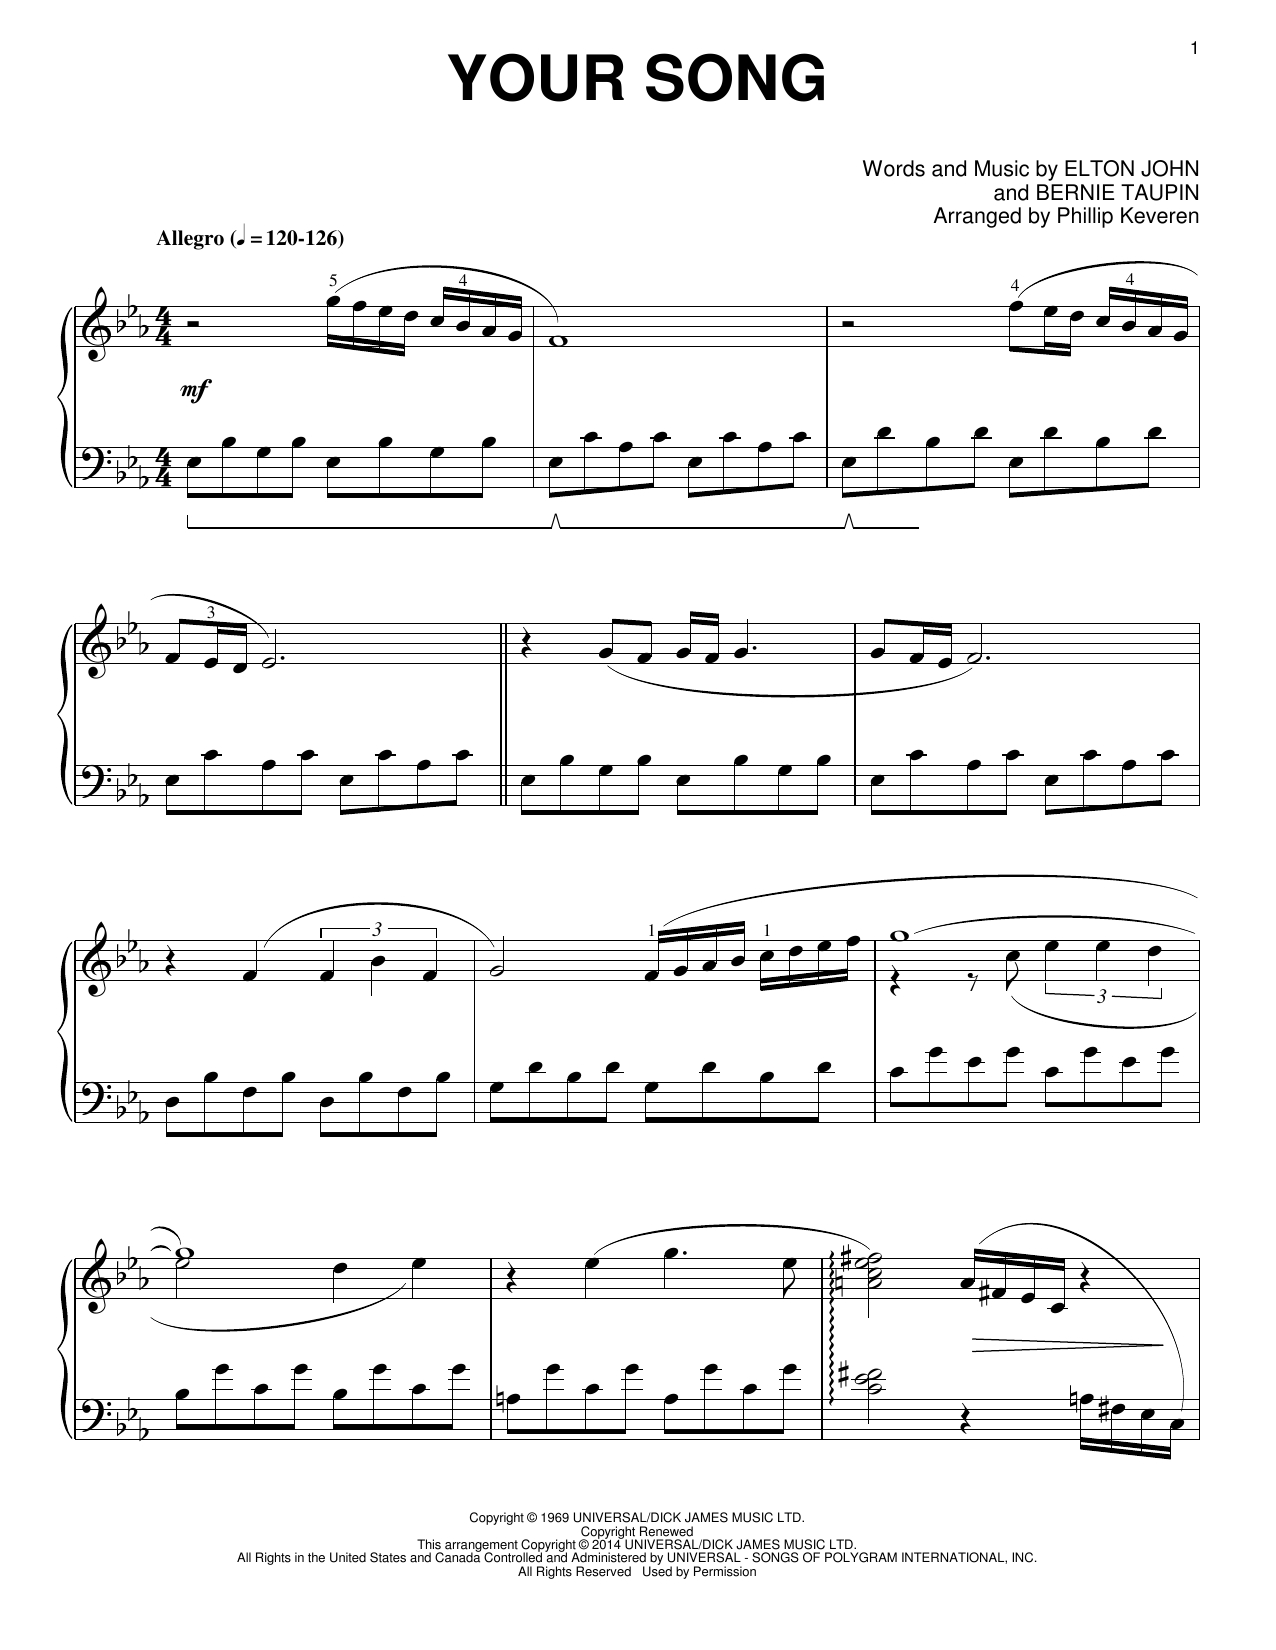 Your Song Chords Phillip Keveren Your Song Sheet Music Notes Chords Download Printable Piano Solo Sku 154339